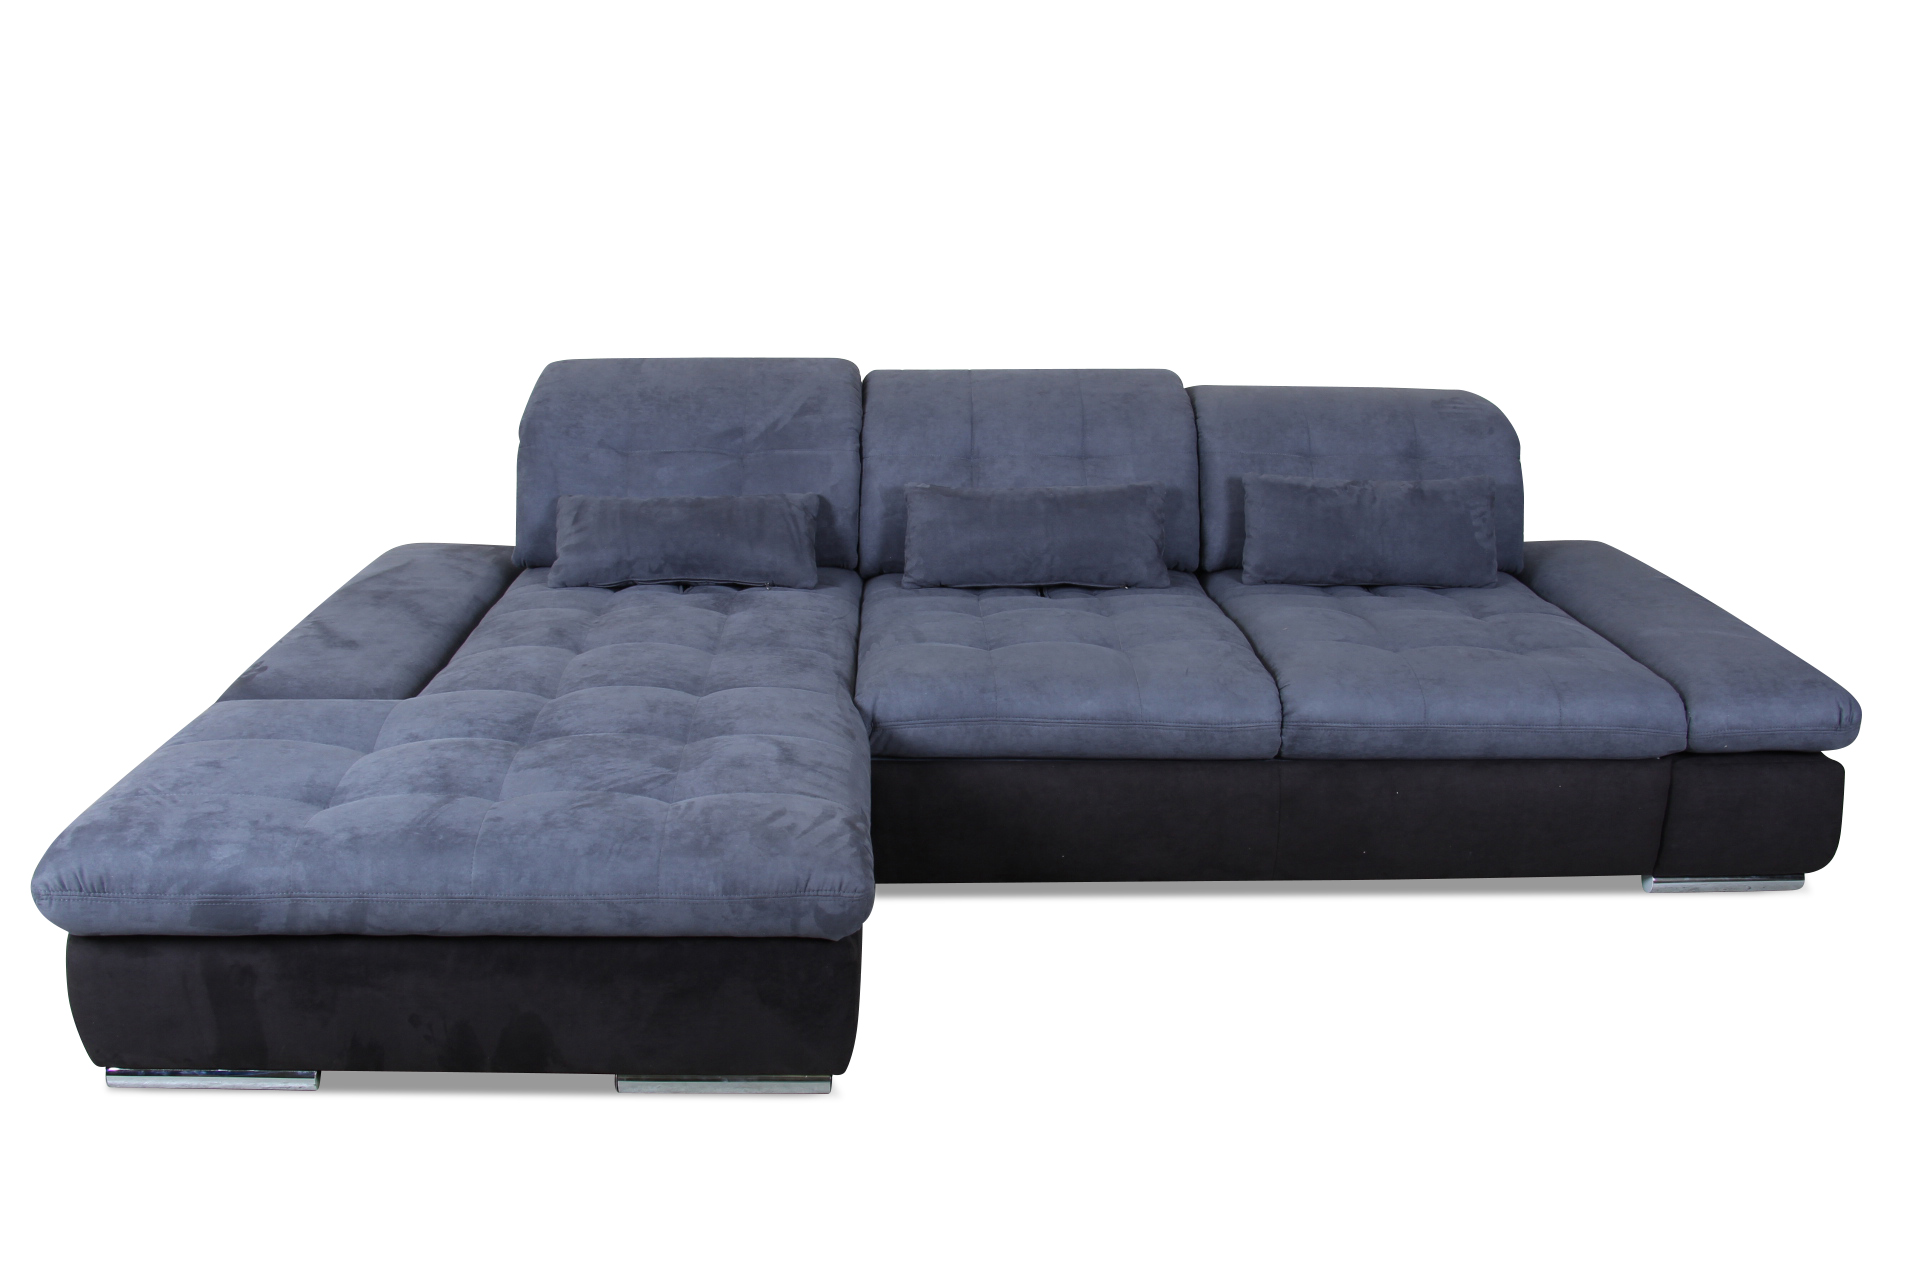 ecksofa blau mit federkern sofas zum halben preis. Black Bedroom Furniture Sets. Home Design Ideas